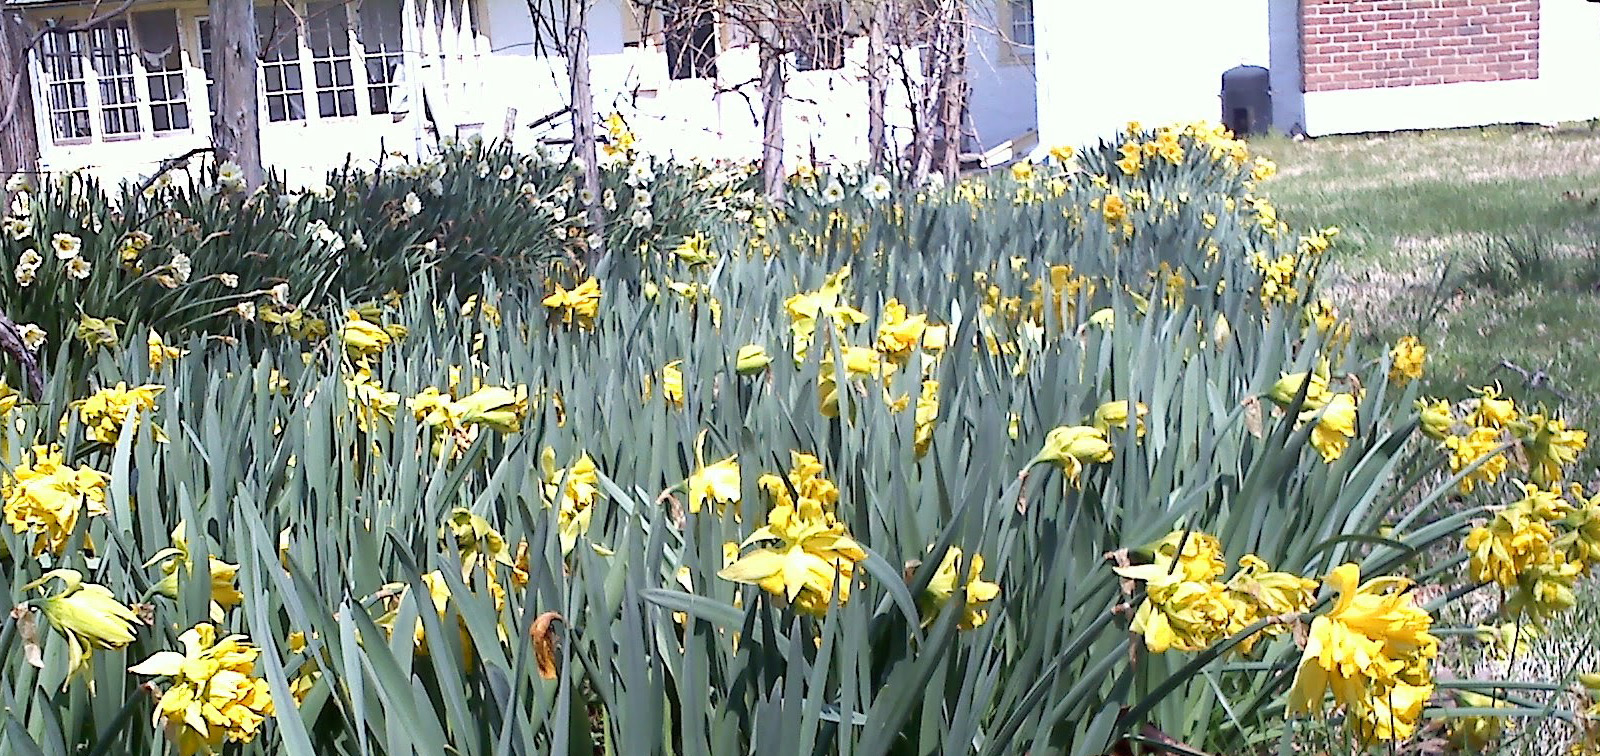 photo of daffodils at the Penrose-Strawbridge House in Horsham